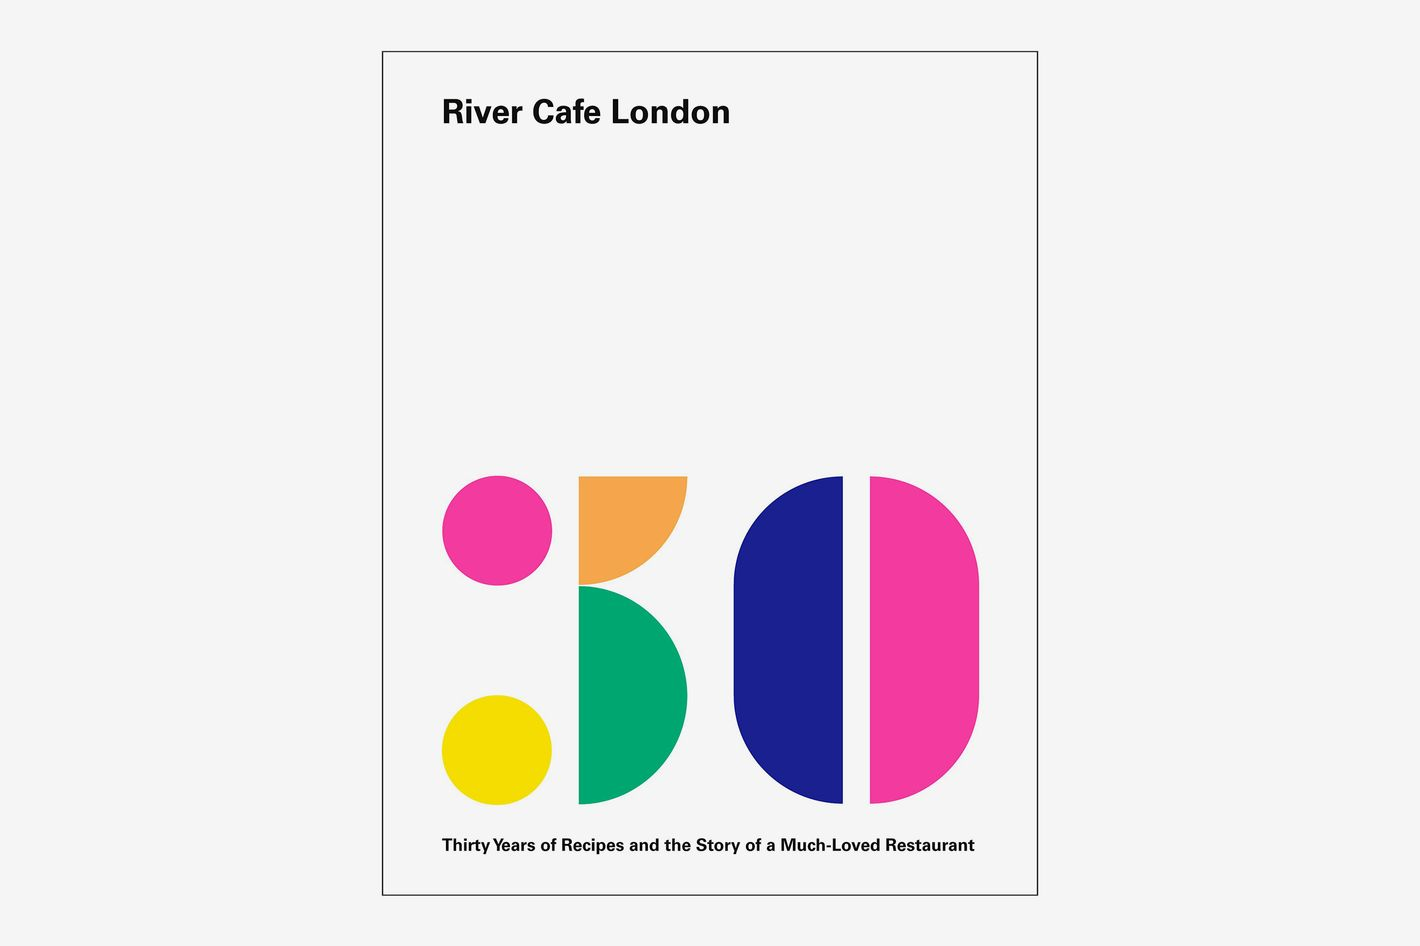 River Cafe London: Thirty Years of Recipes and the Story of a Much-Loved Restaurant